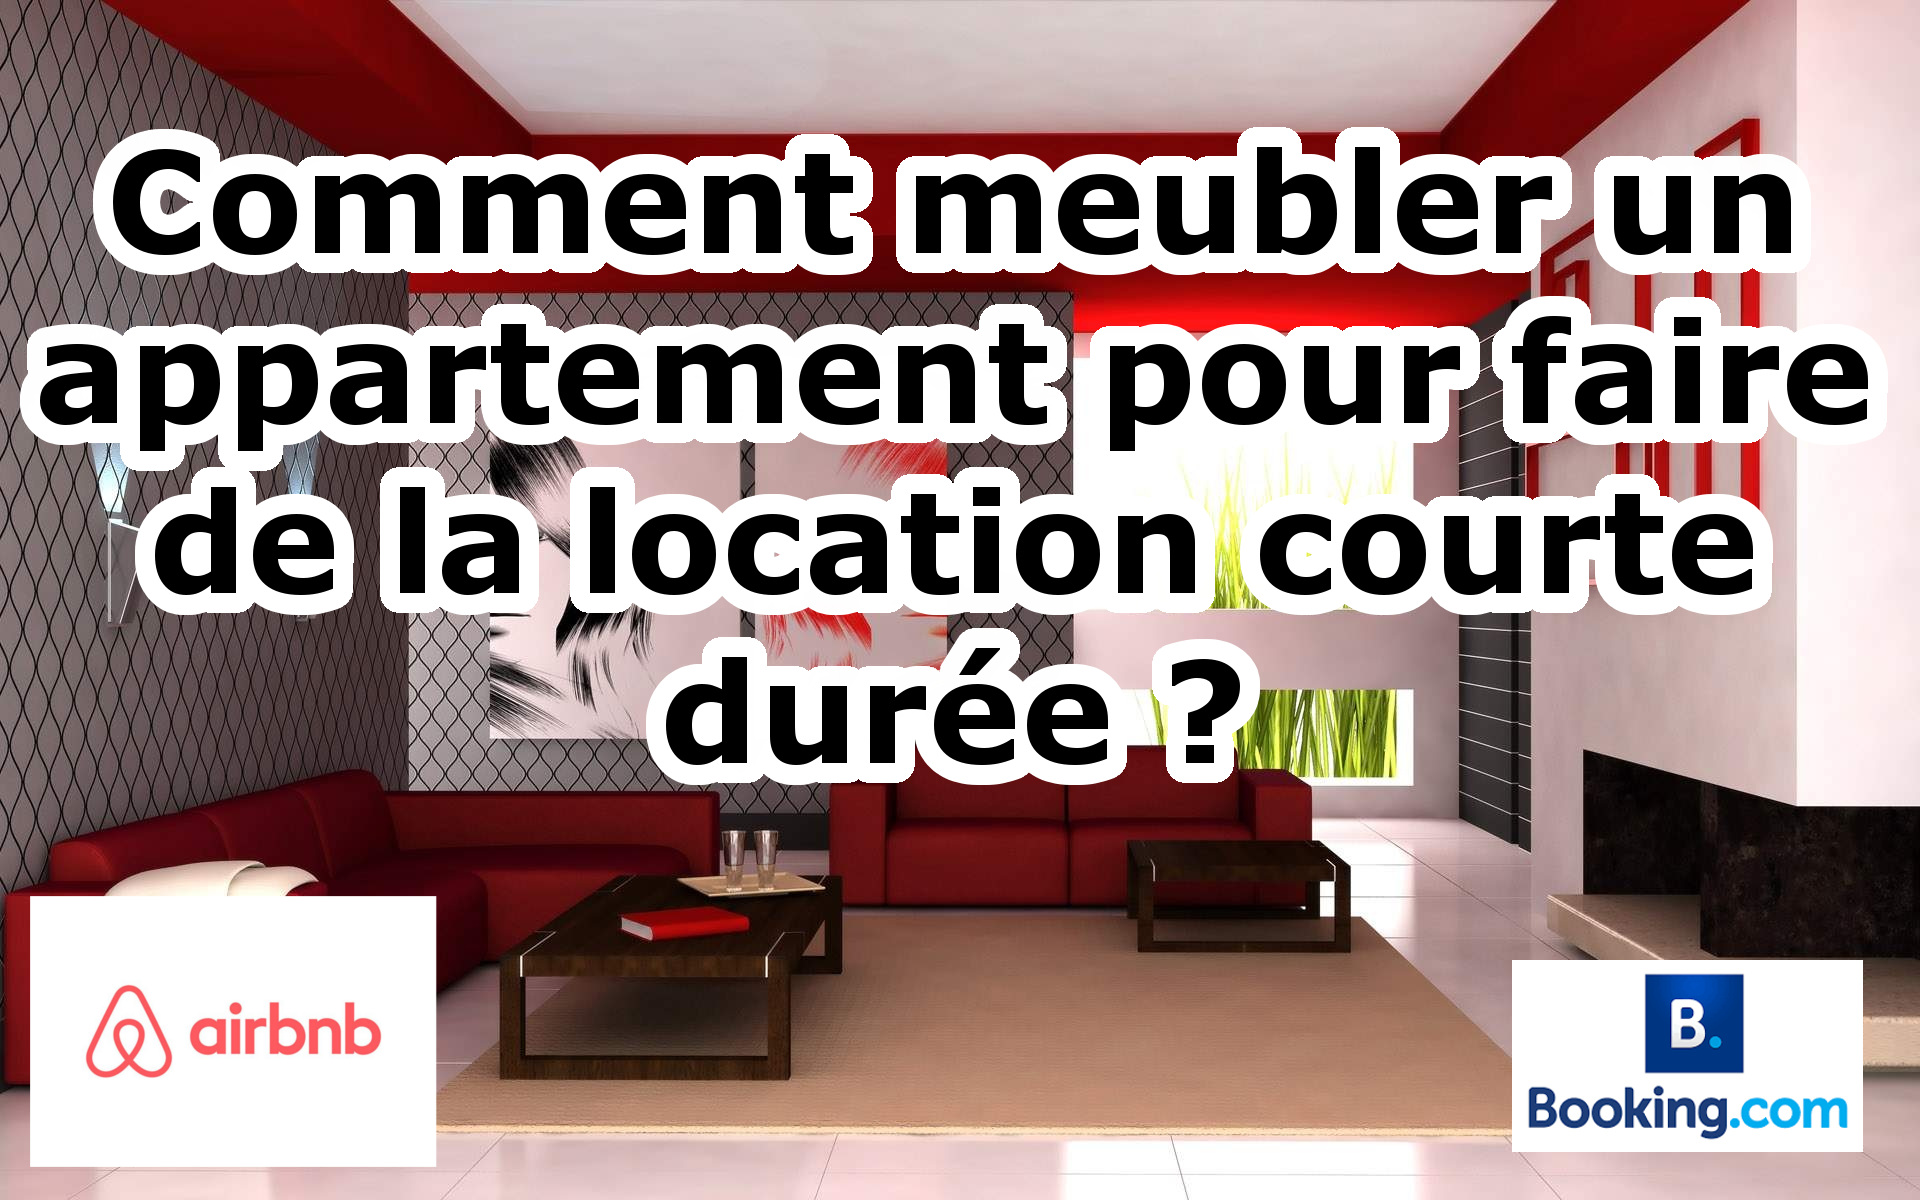 comment meubler un appartement pour faire la location courte dur e. Black Bedroom Furniture Sets. Home Design Ideas